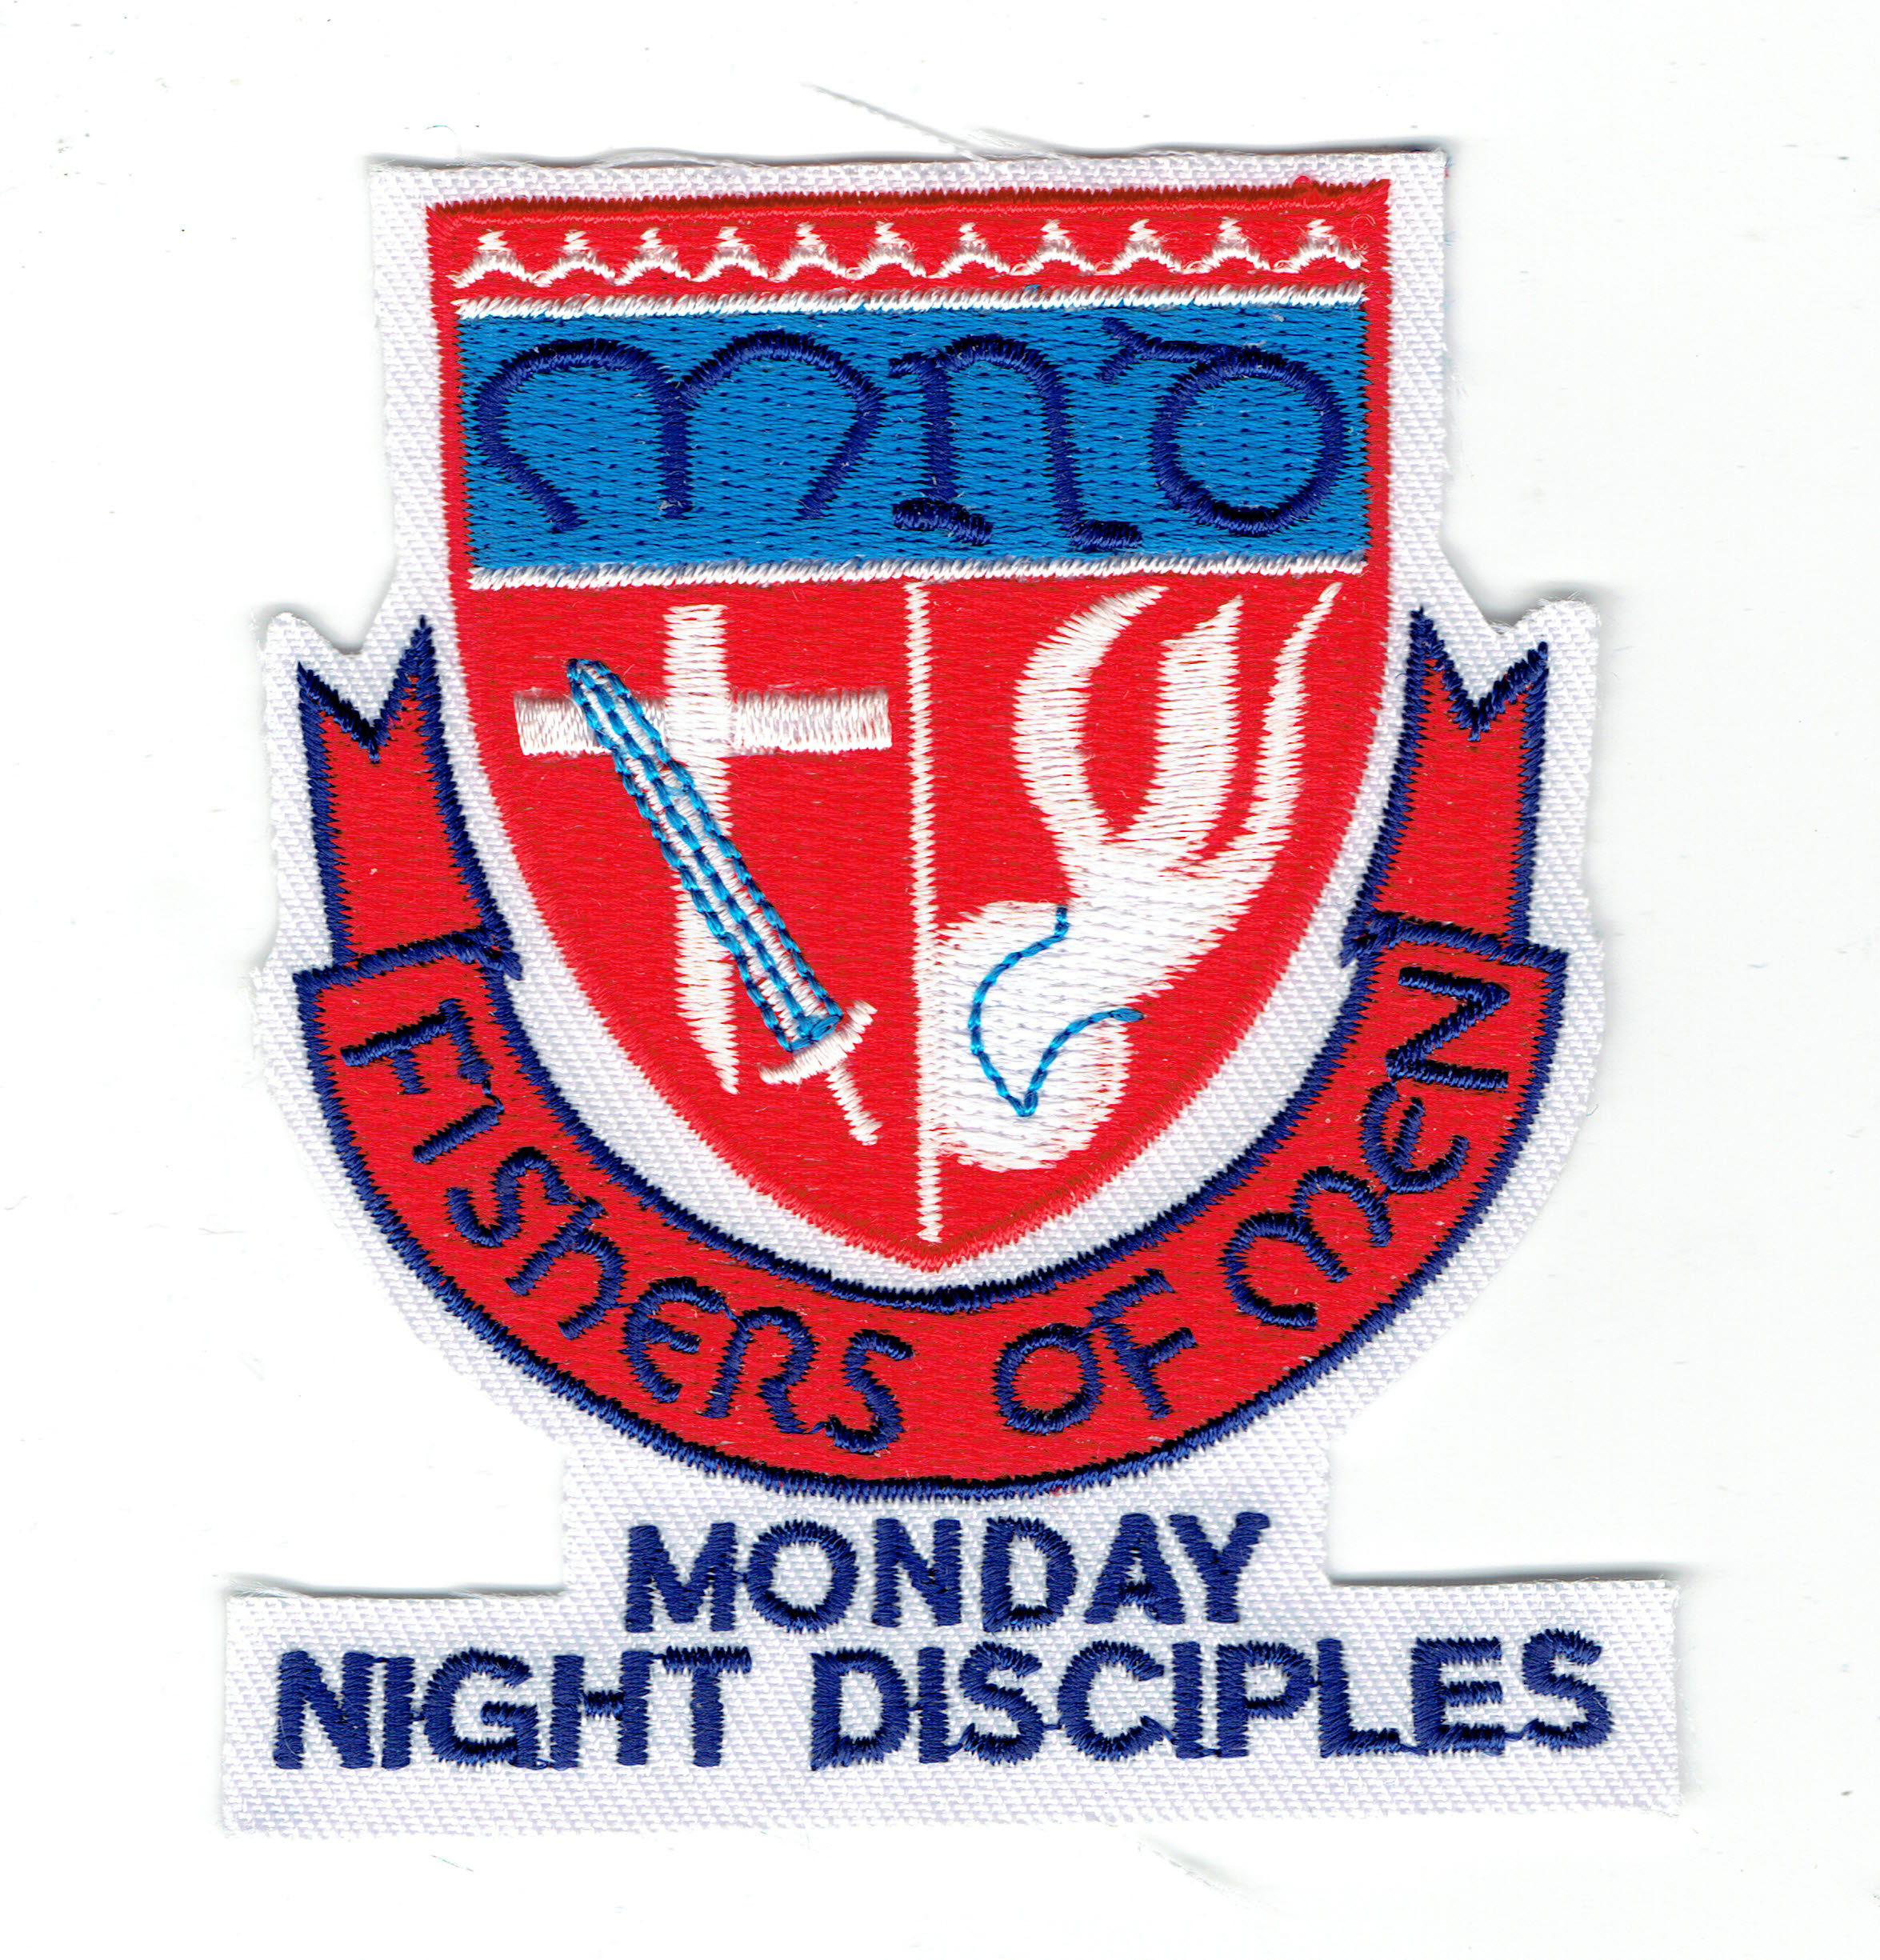 monday night dis old emblem08242017_0001.jpg